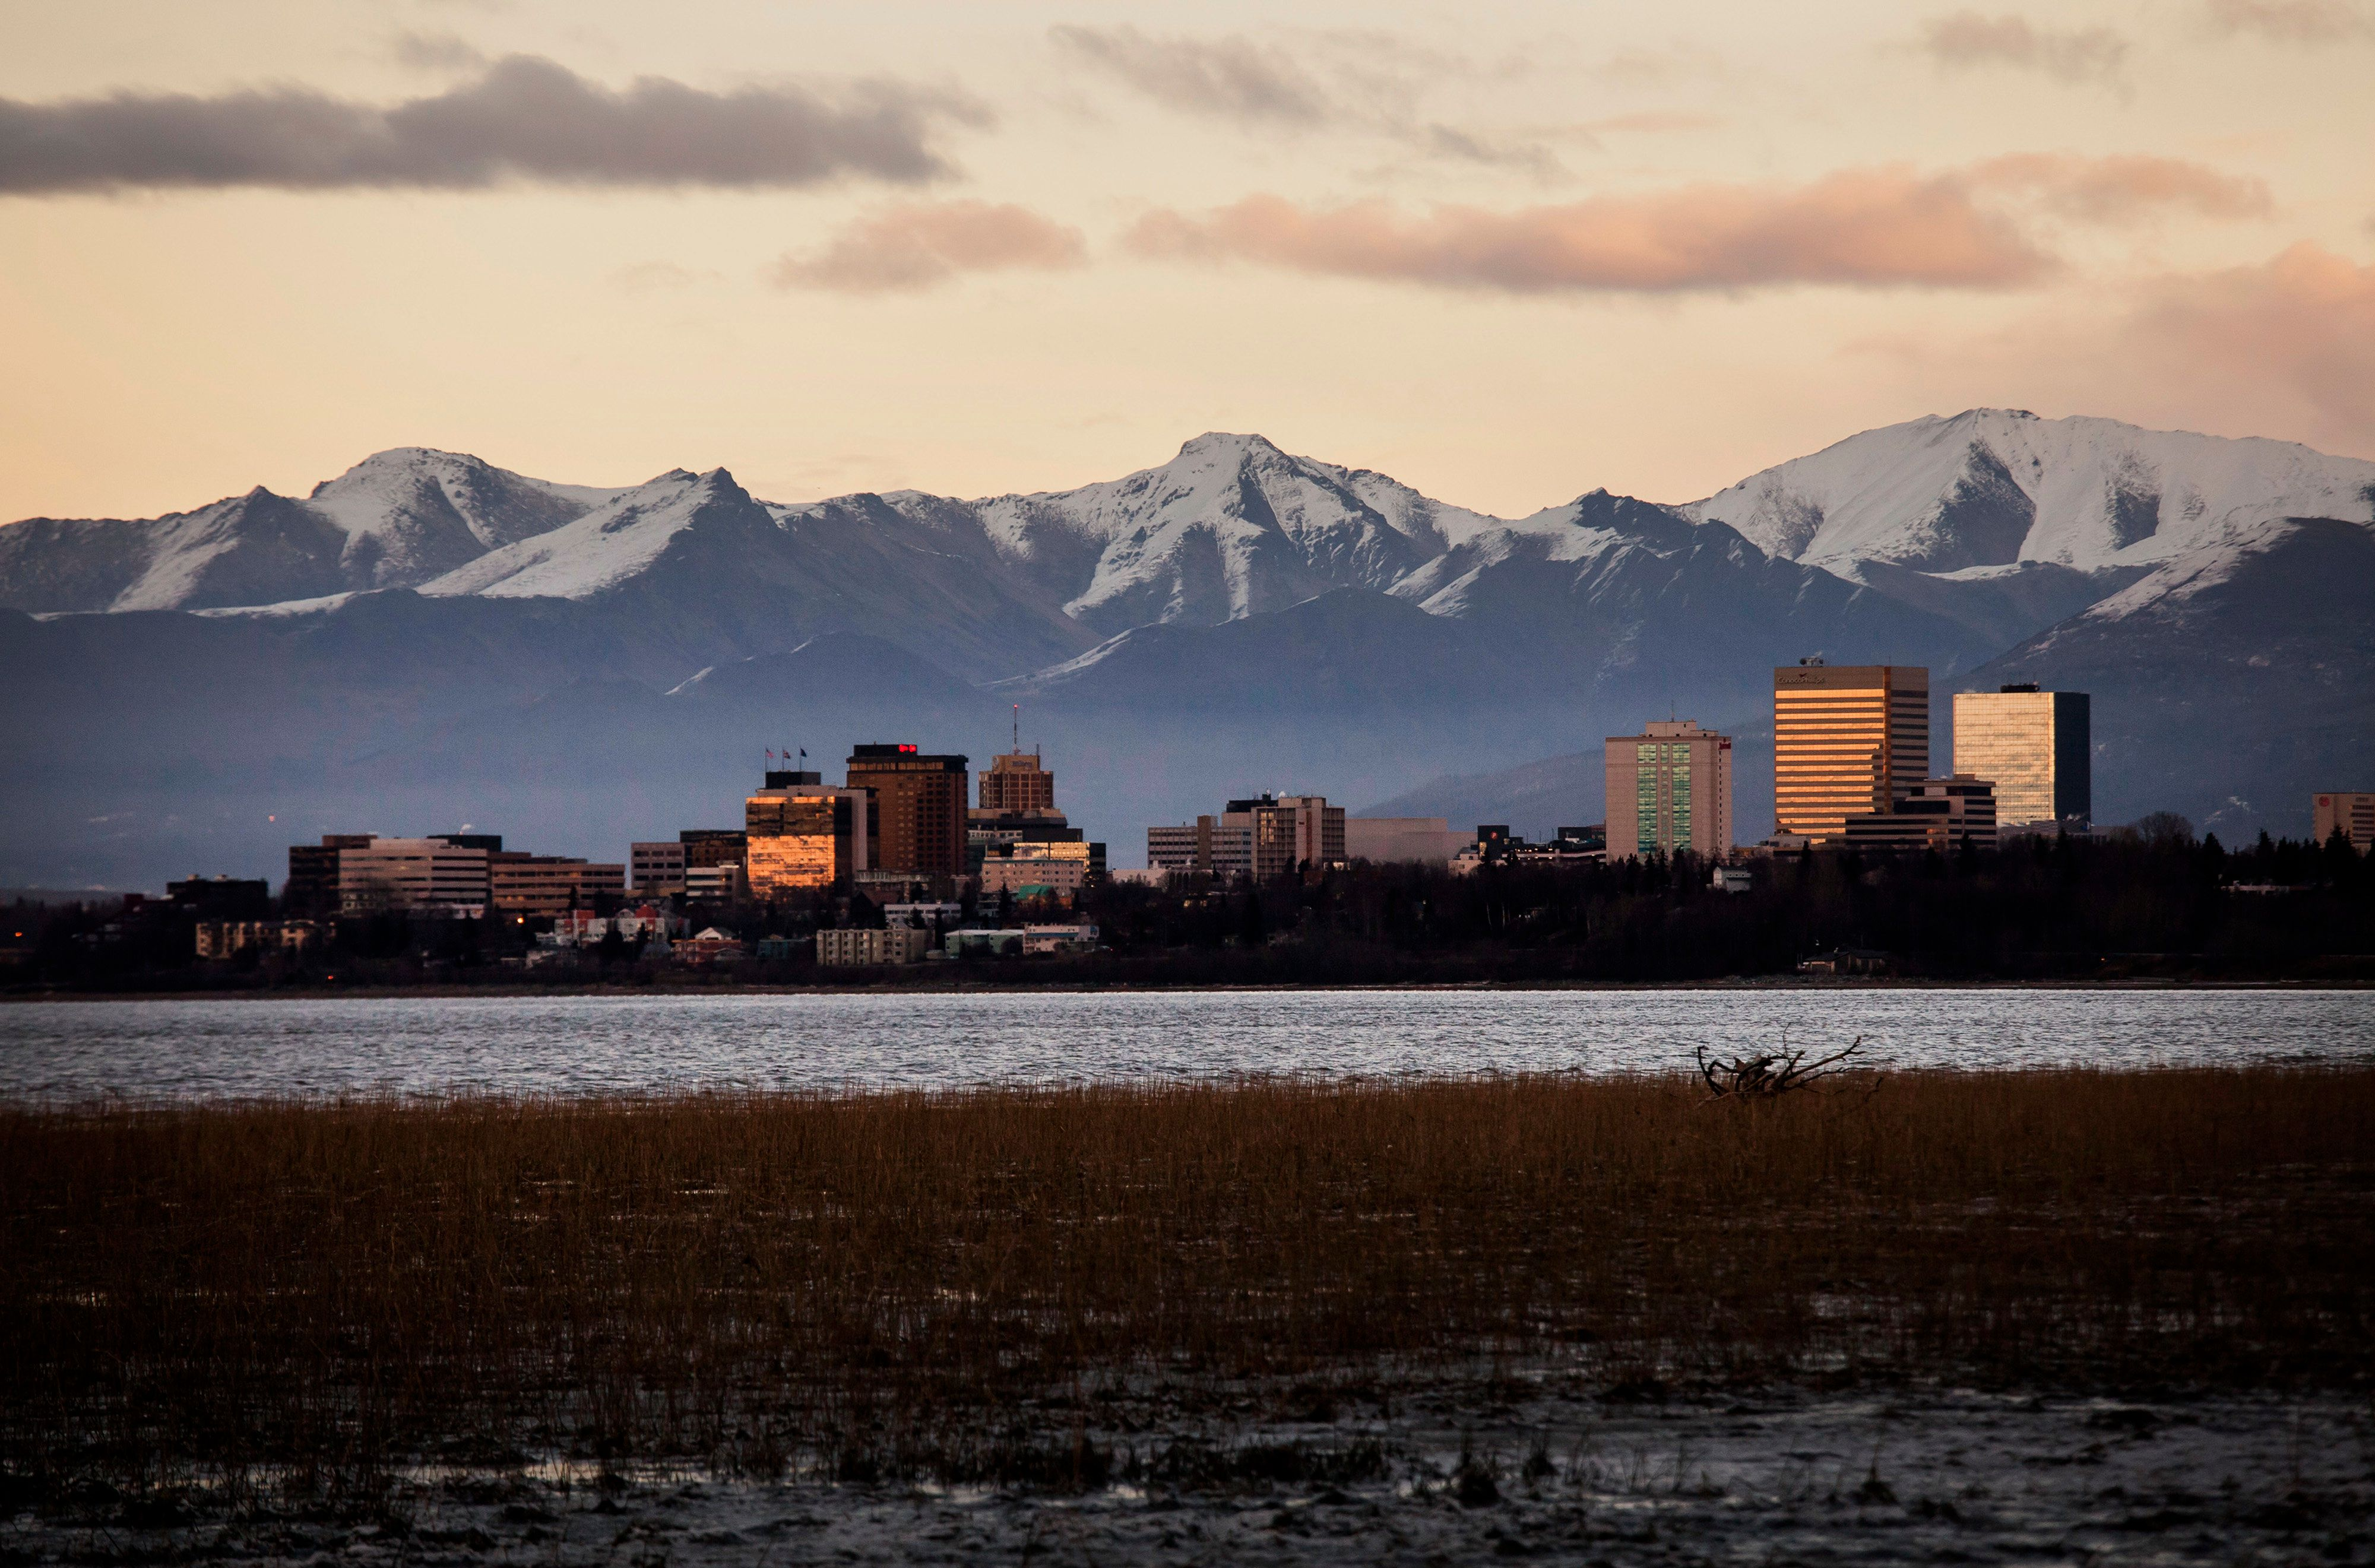 Sunlight reflects off of buildings standing in downtown Anchorage, Alaska, U.S., on Wednesday, Nov. 5, 2014. Voters in Anchorage on Nov. 4 approved a referendum that voids a controversial municipal labor ordinance passed in February 2013. The repeal referendum targeted an ordinance known as AO-37, or the Responsible Labor Act, which eliminated strike rights for most unions, eliminated rights to binding arbitration for police and firefighter unionsgroups that had previously ceded strike rights in exchange for binding arbitrationand limited allowable pay and benefits. Photographer: David Ryder/Bloomberg via Getty Images